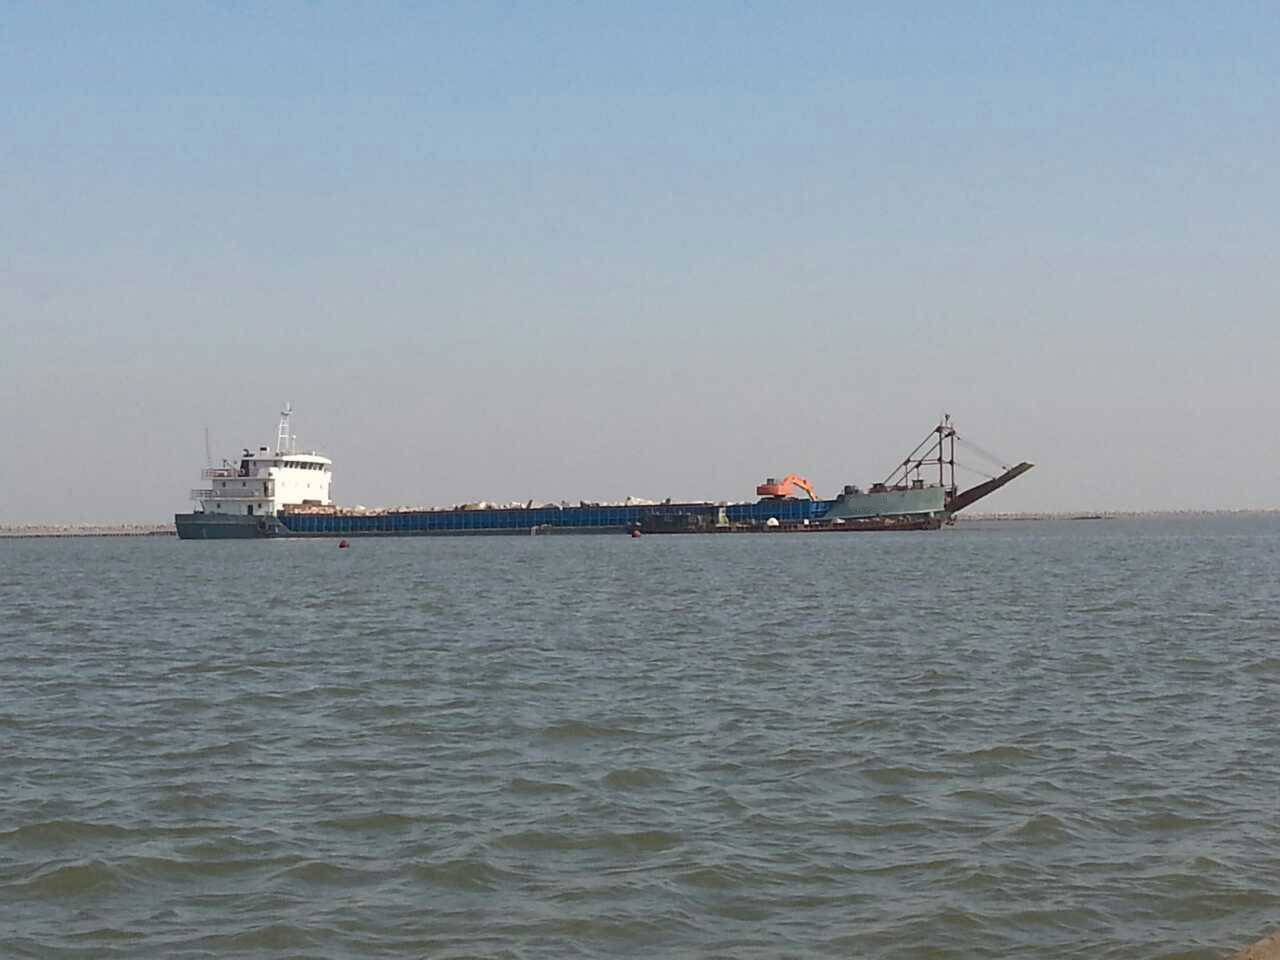 295 FT 4500 DWT LCT Barge